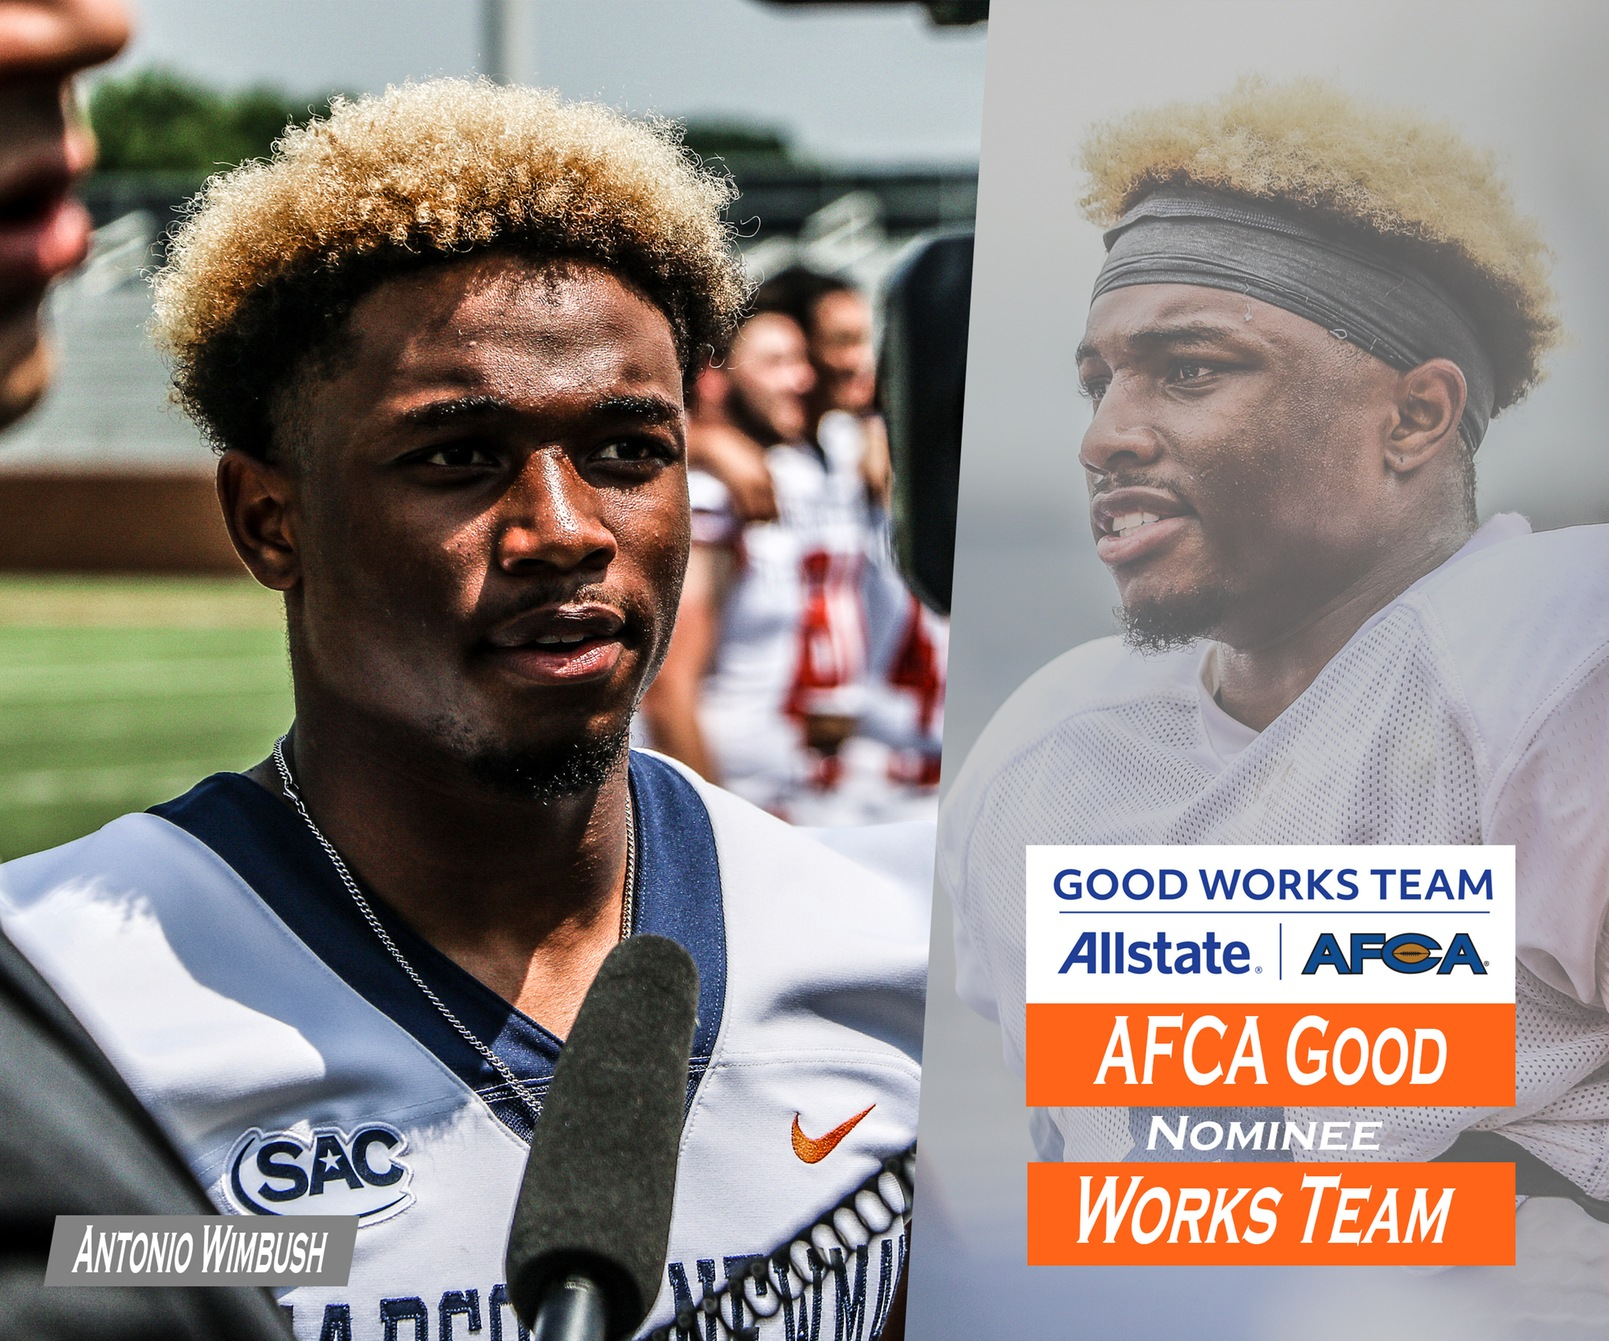 Wimbush nominated for AFCA Allstate Good Works Team